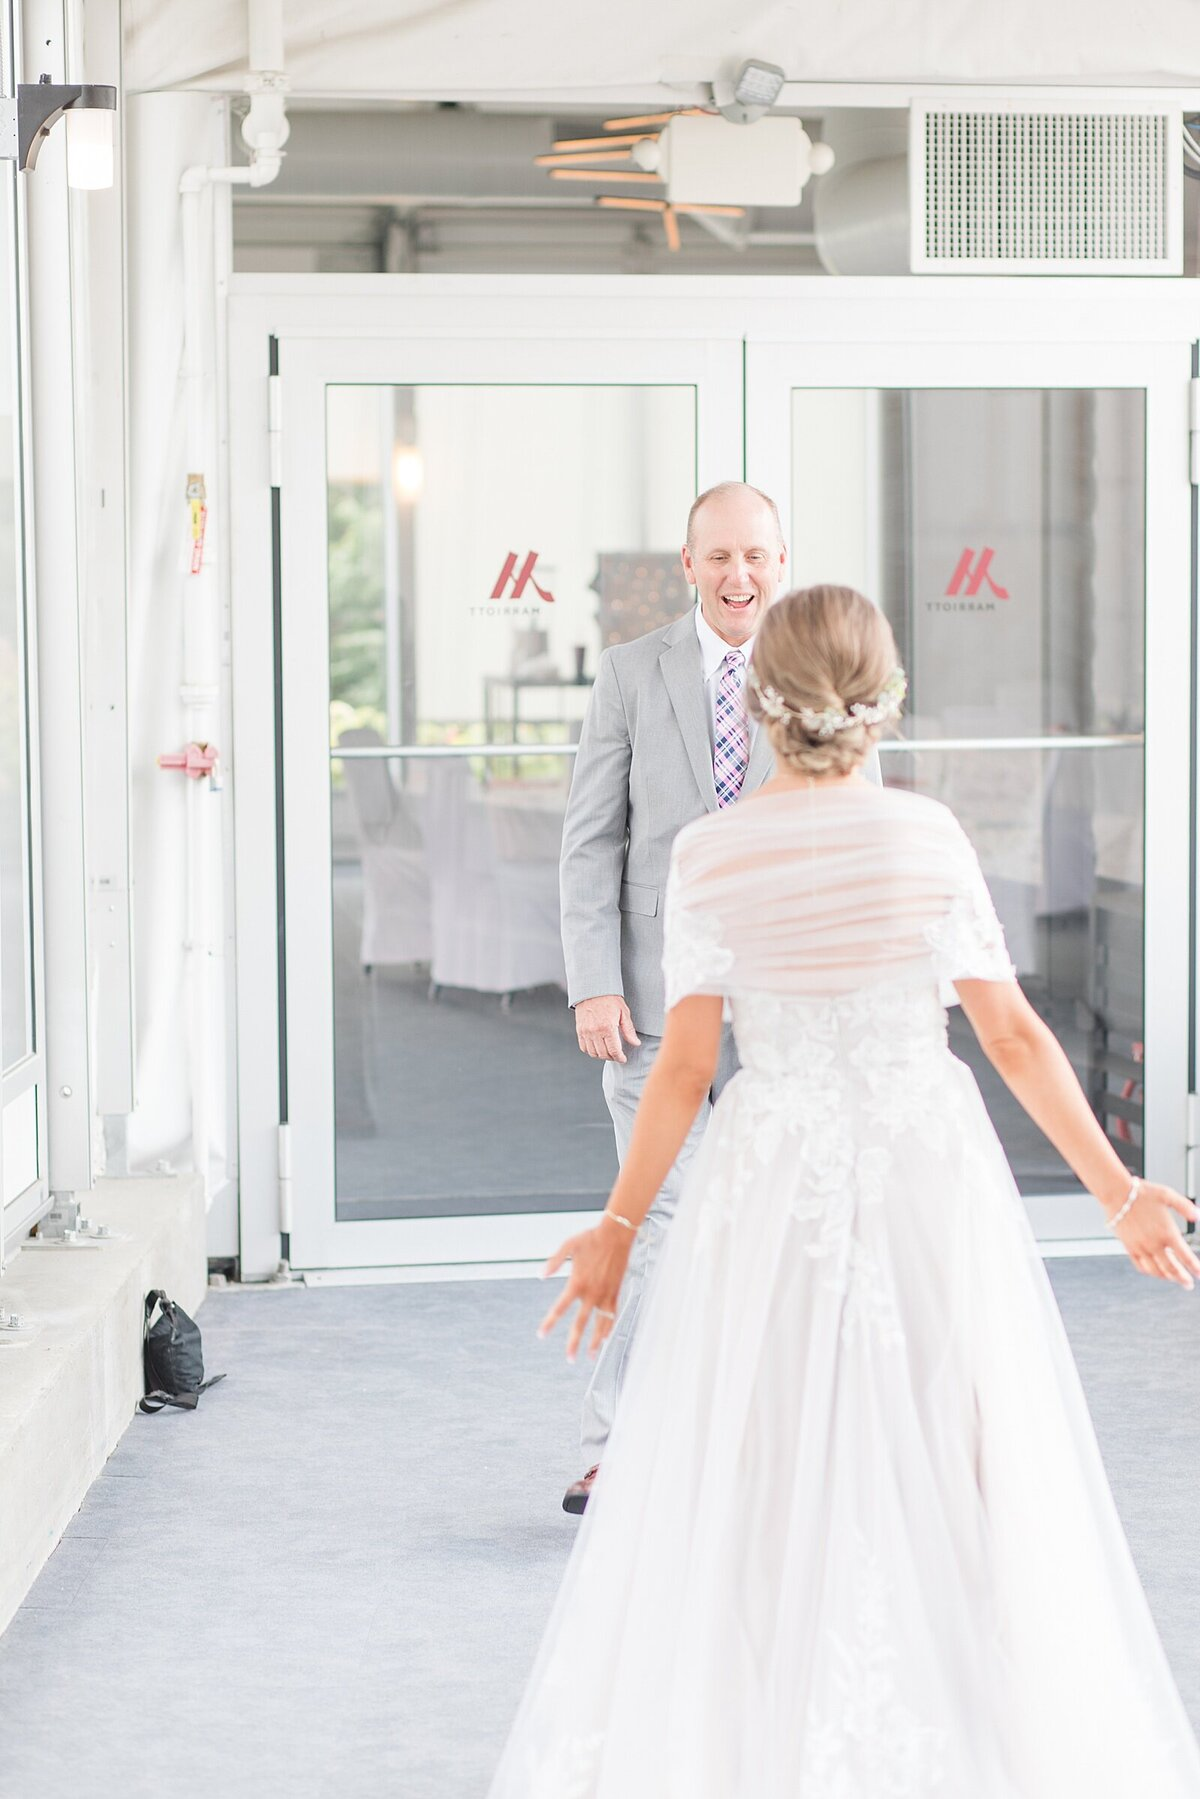 Kara Webster Photography | Meredith & Tyler | University Of Dayton Marriott Wedding Photographer_0026